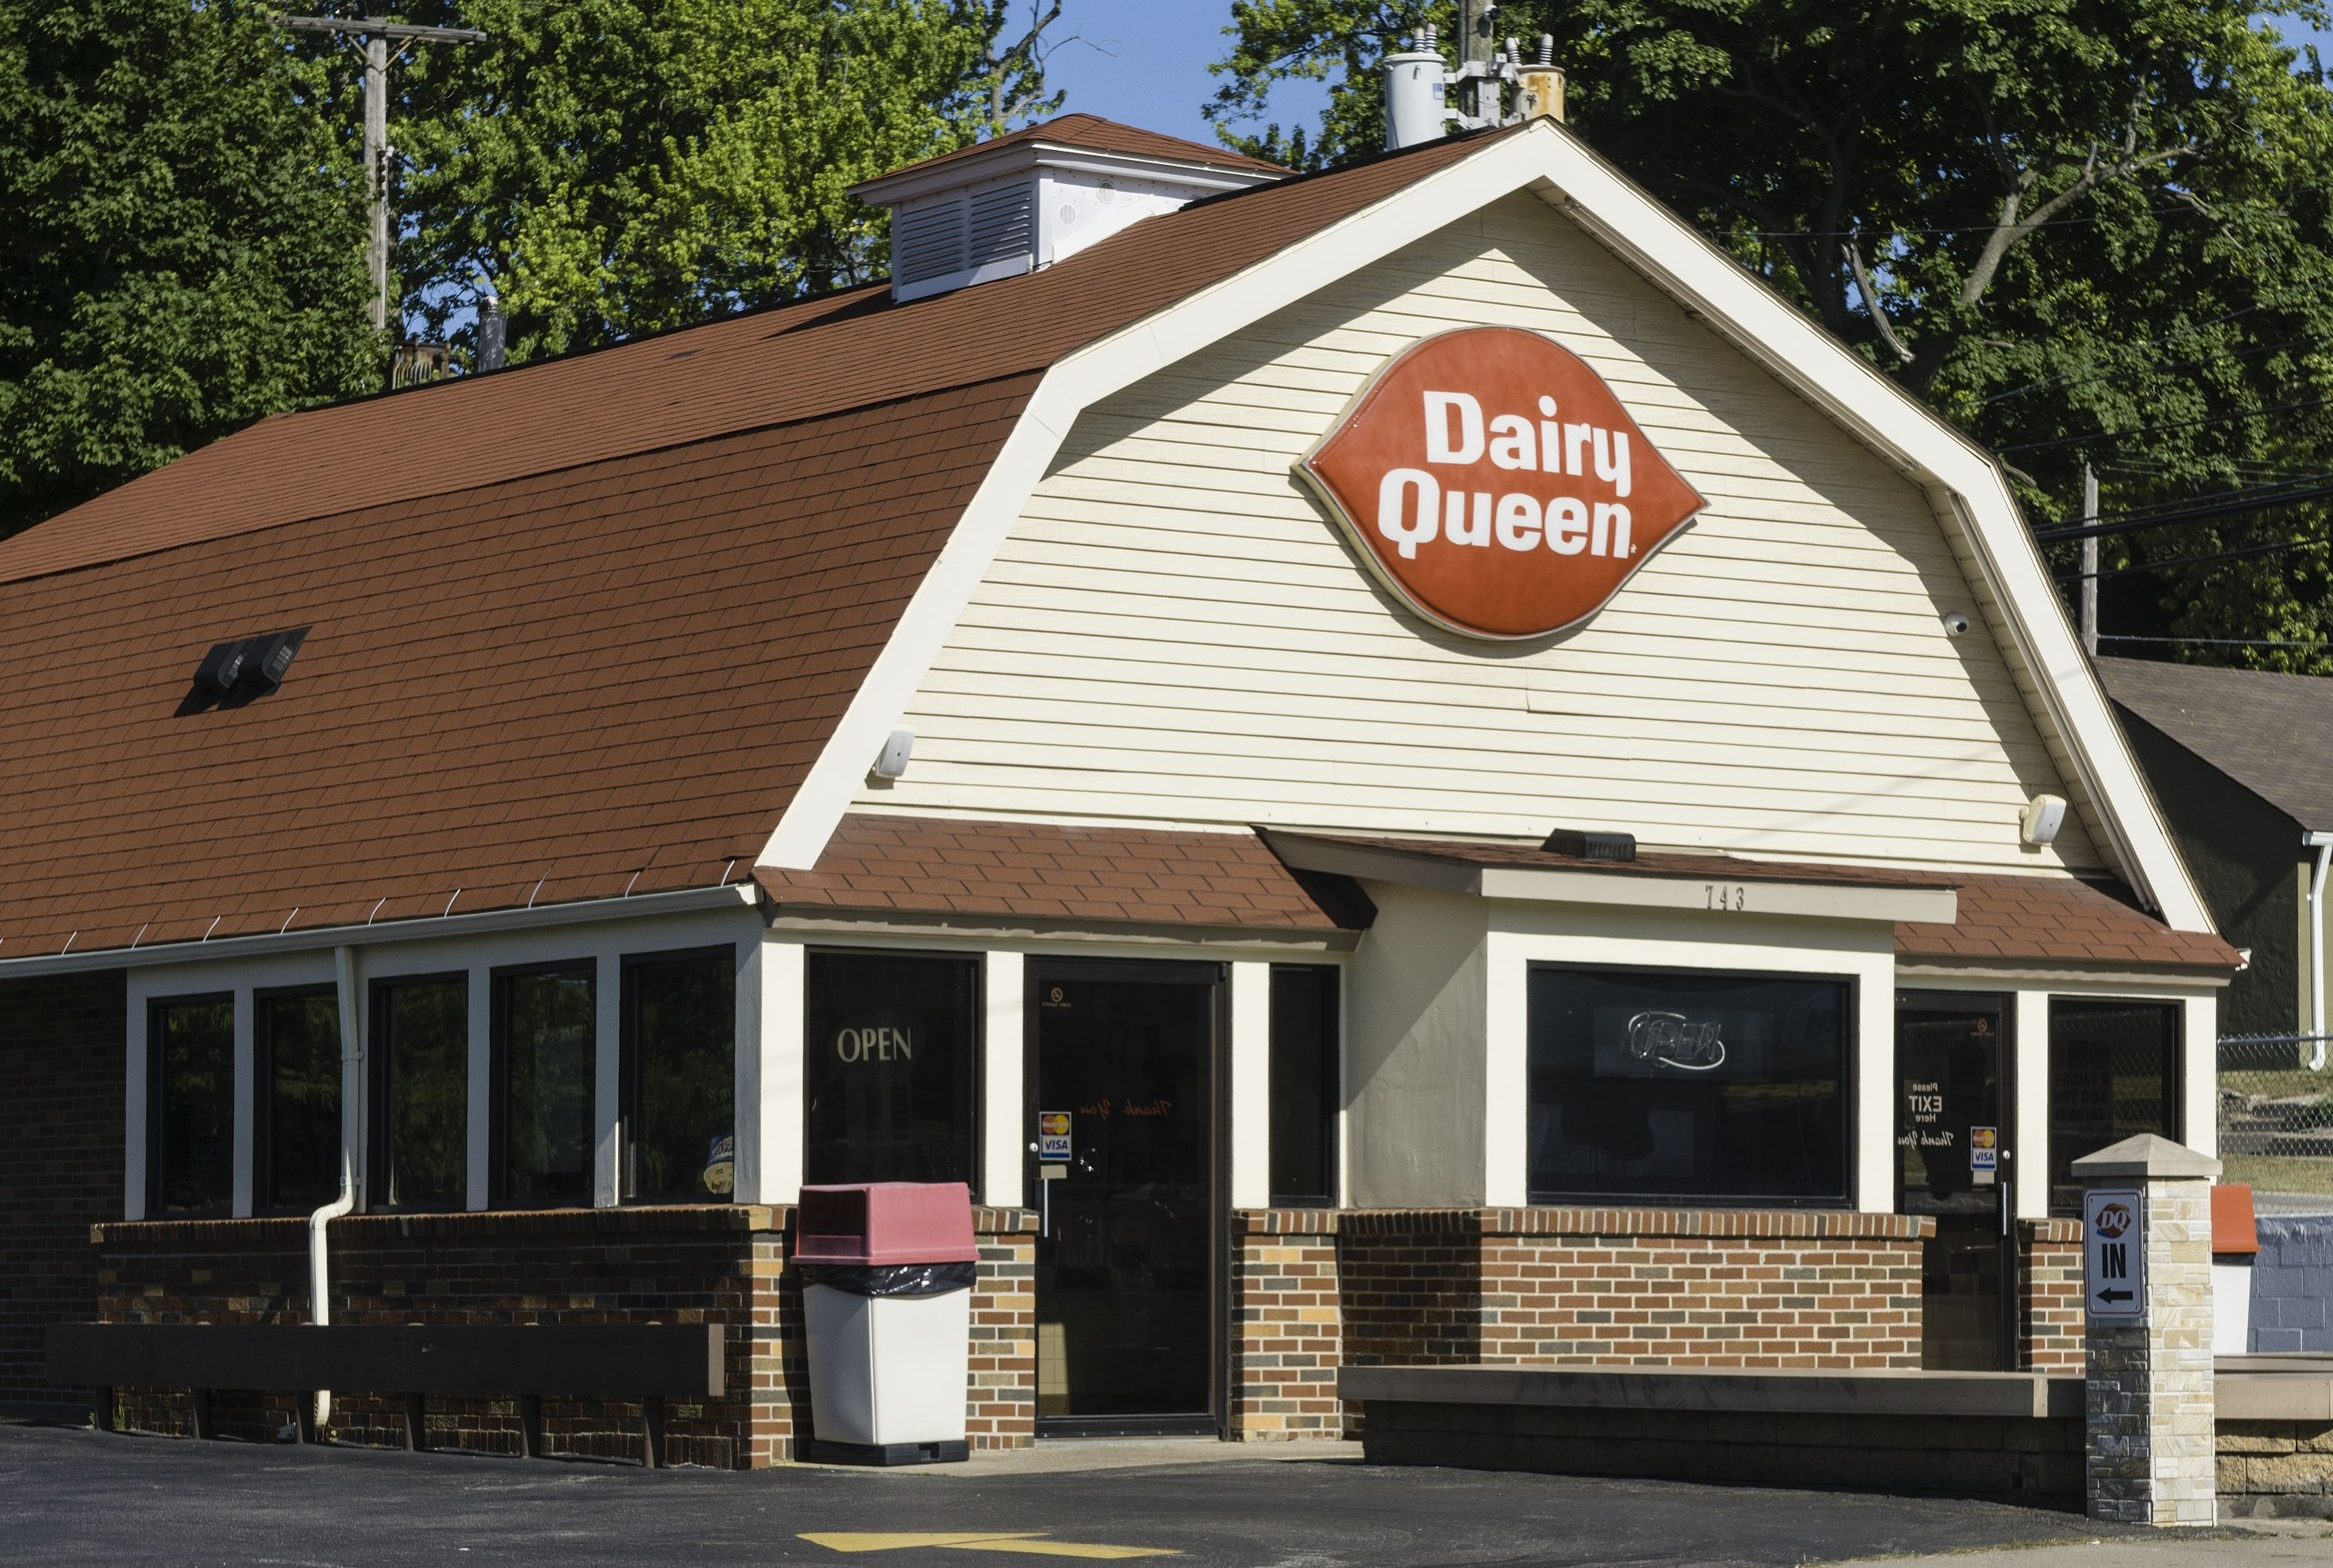 20 Things You Didn't Know About Dairy Queen | Mental Floss